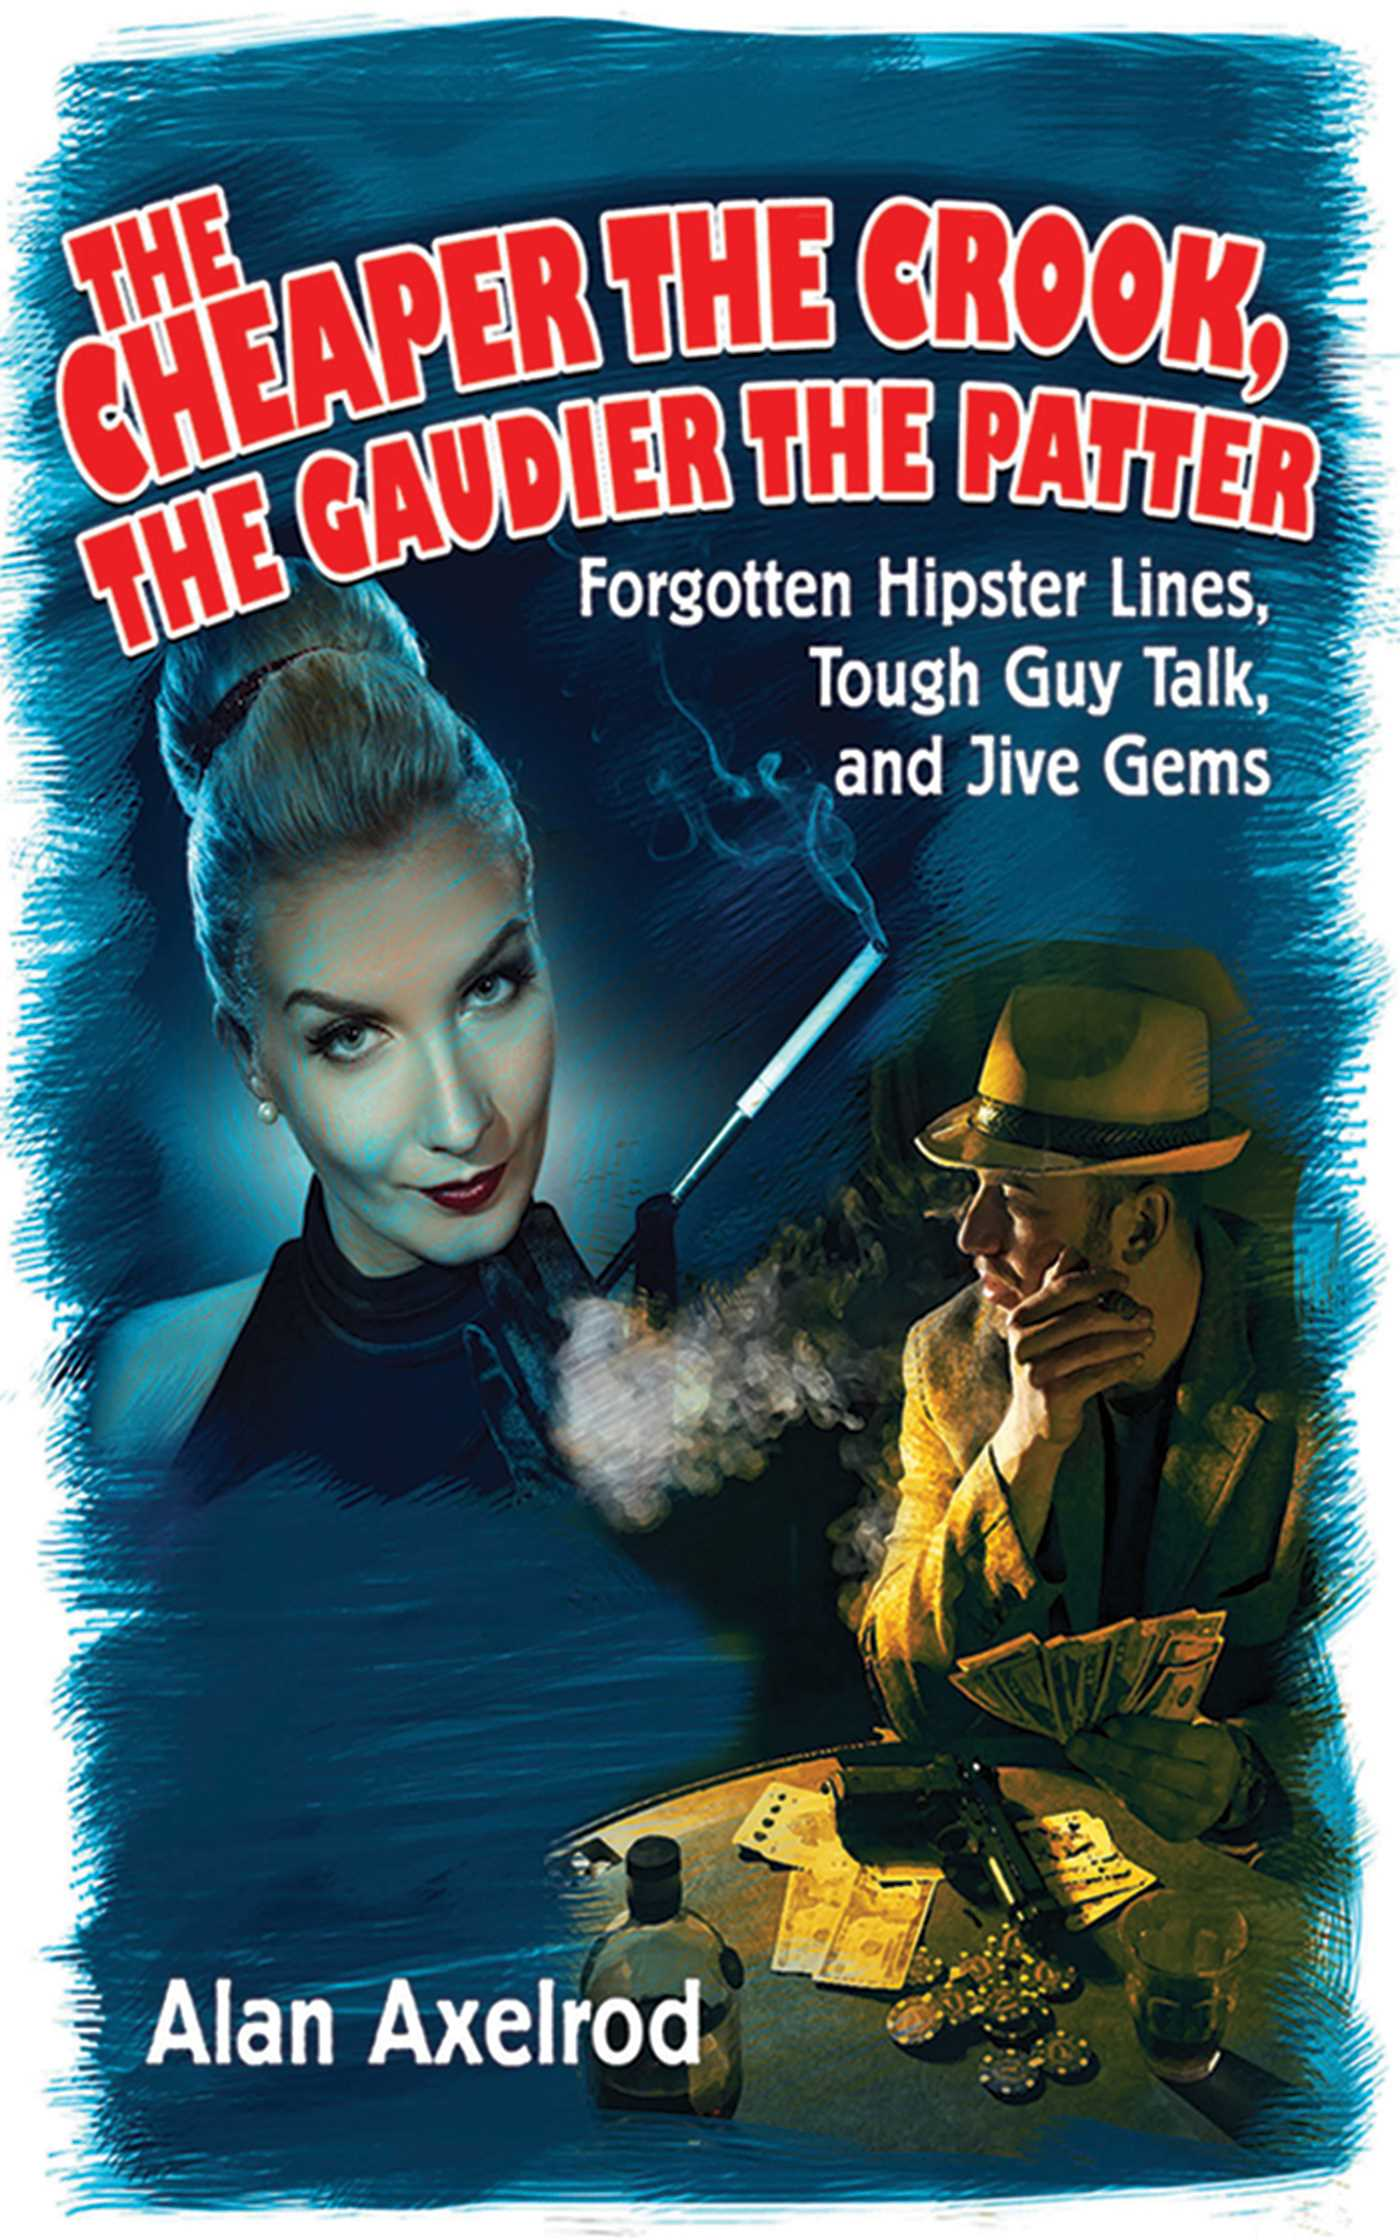 Book Cover Image (jpg): The Cheaper the Crook, the Gaudier the Patter